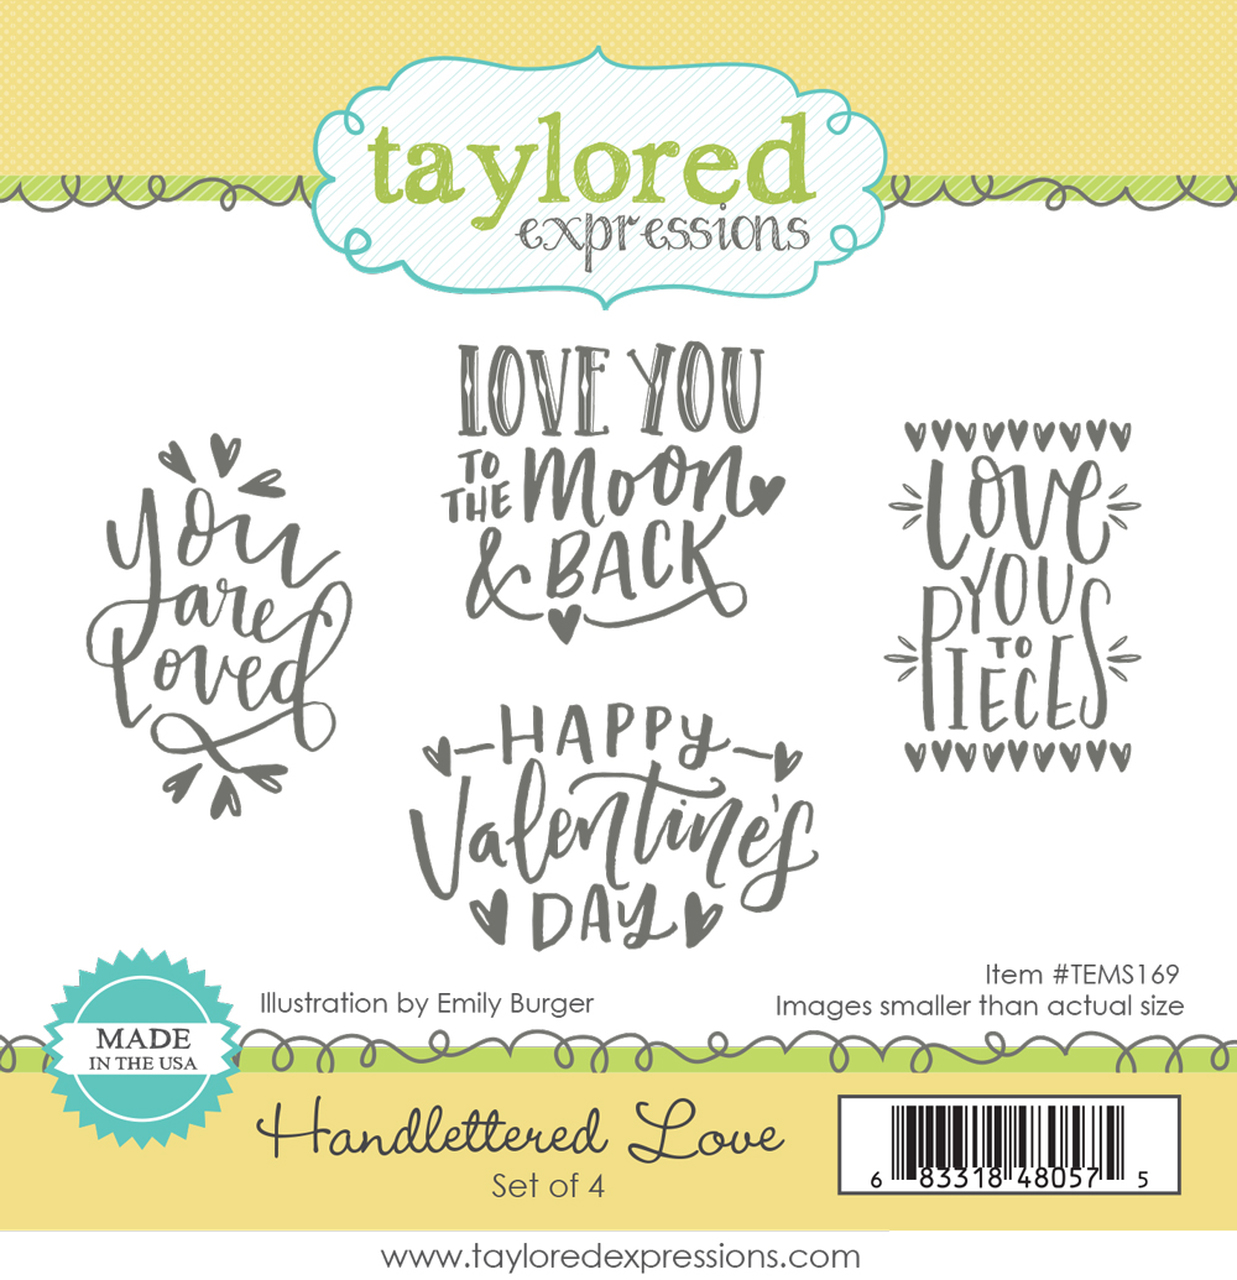 *NEW* - Taylored Expression - Handlettered Love